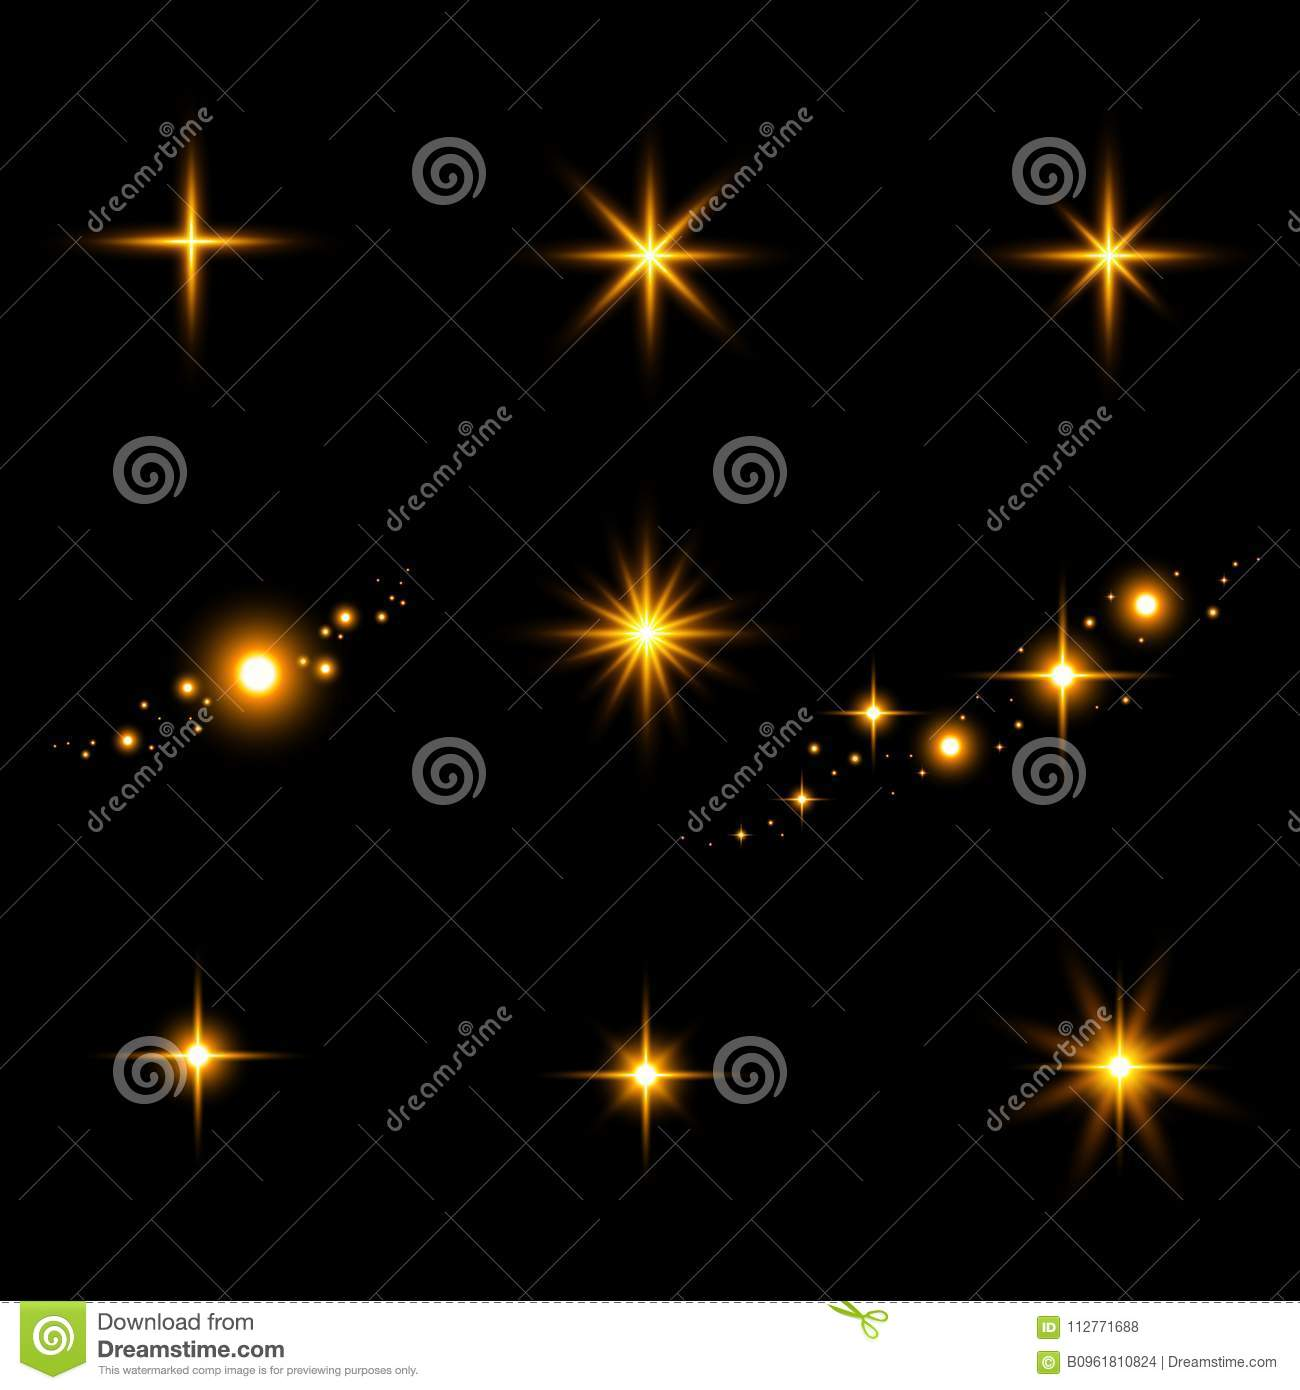 light flashes sun beams and star lights isolated on a black b stock photo image of festive. Black Bedroom Furniture Sets. Home Design Ideas